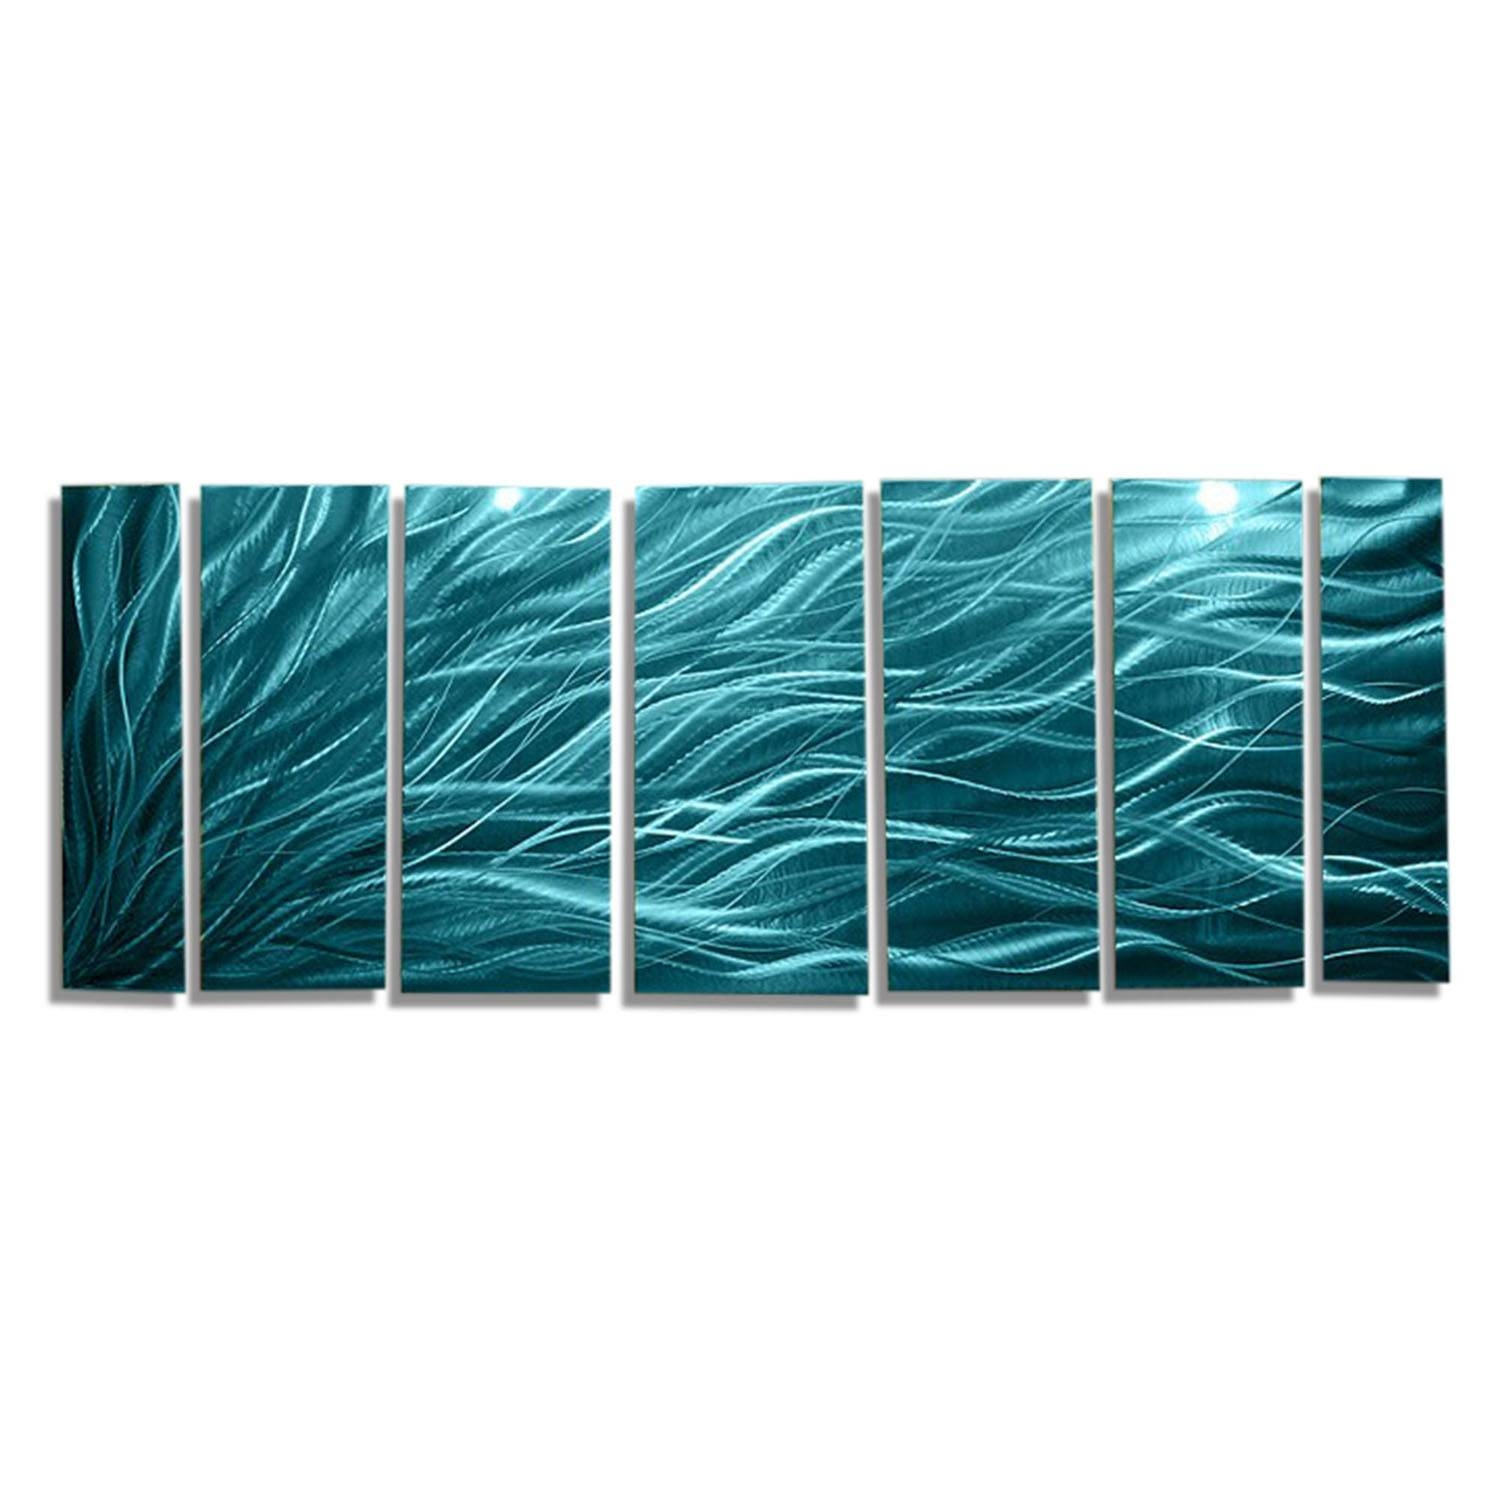 Rays Of Hope Aqua – Large Modern Abstract Metal Wall Artjon Inside Most Recent Large Abstract Metal Wall Art (Gallery 7 of 20)